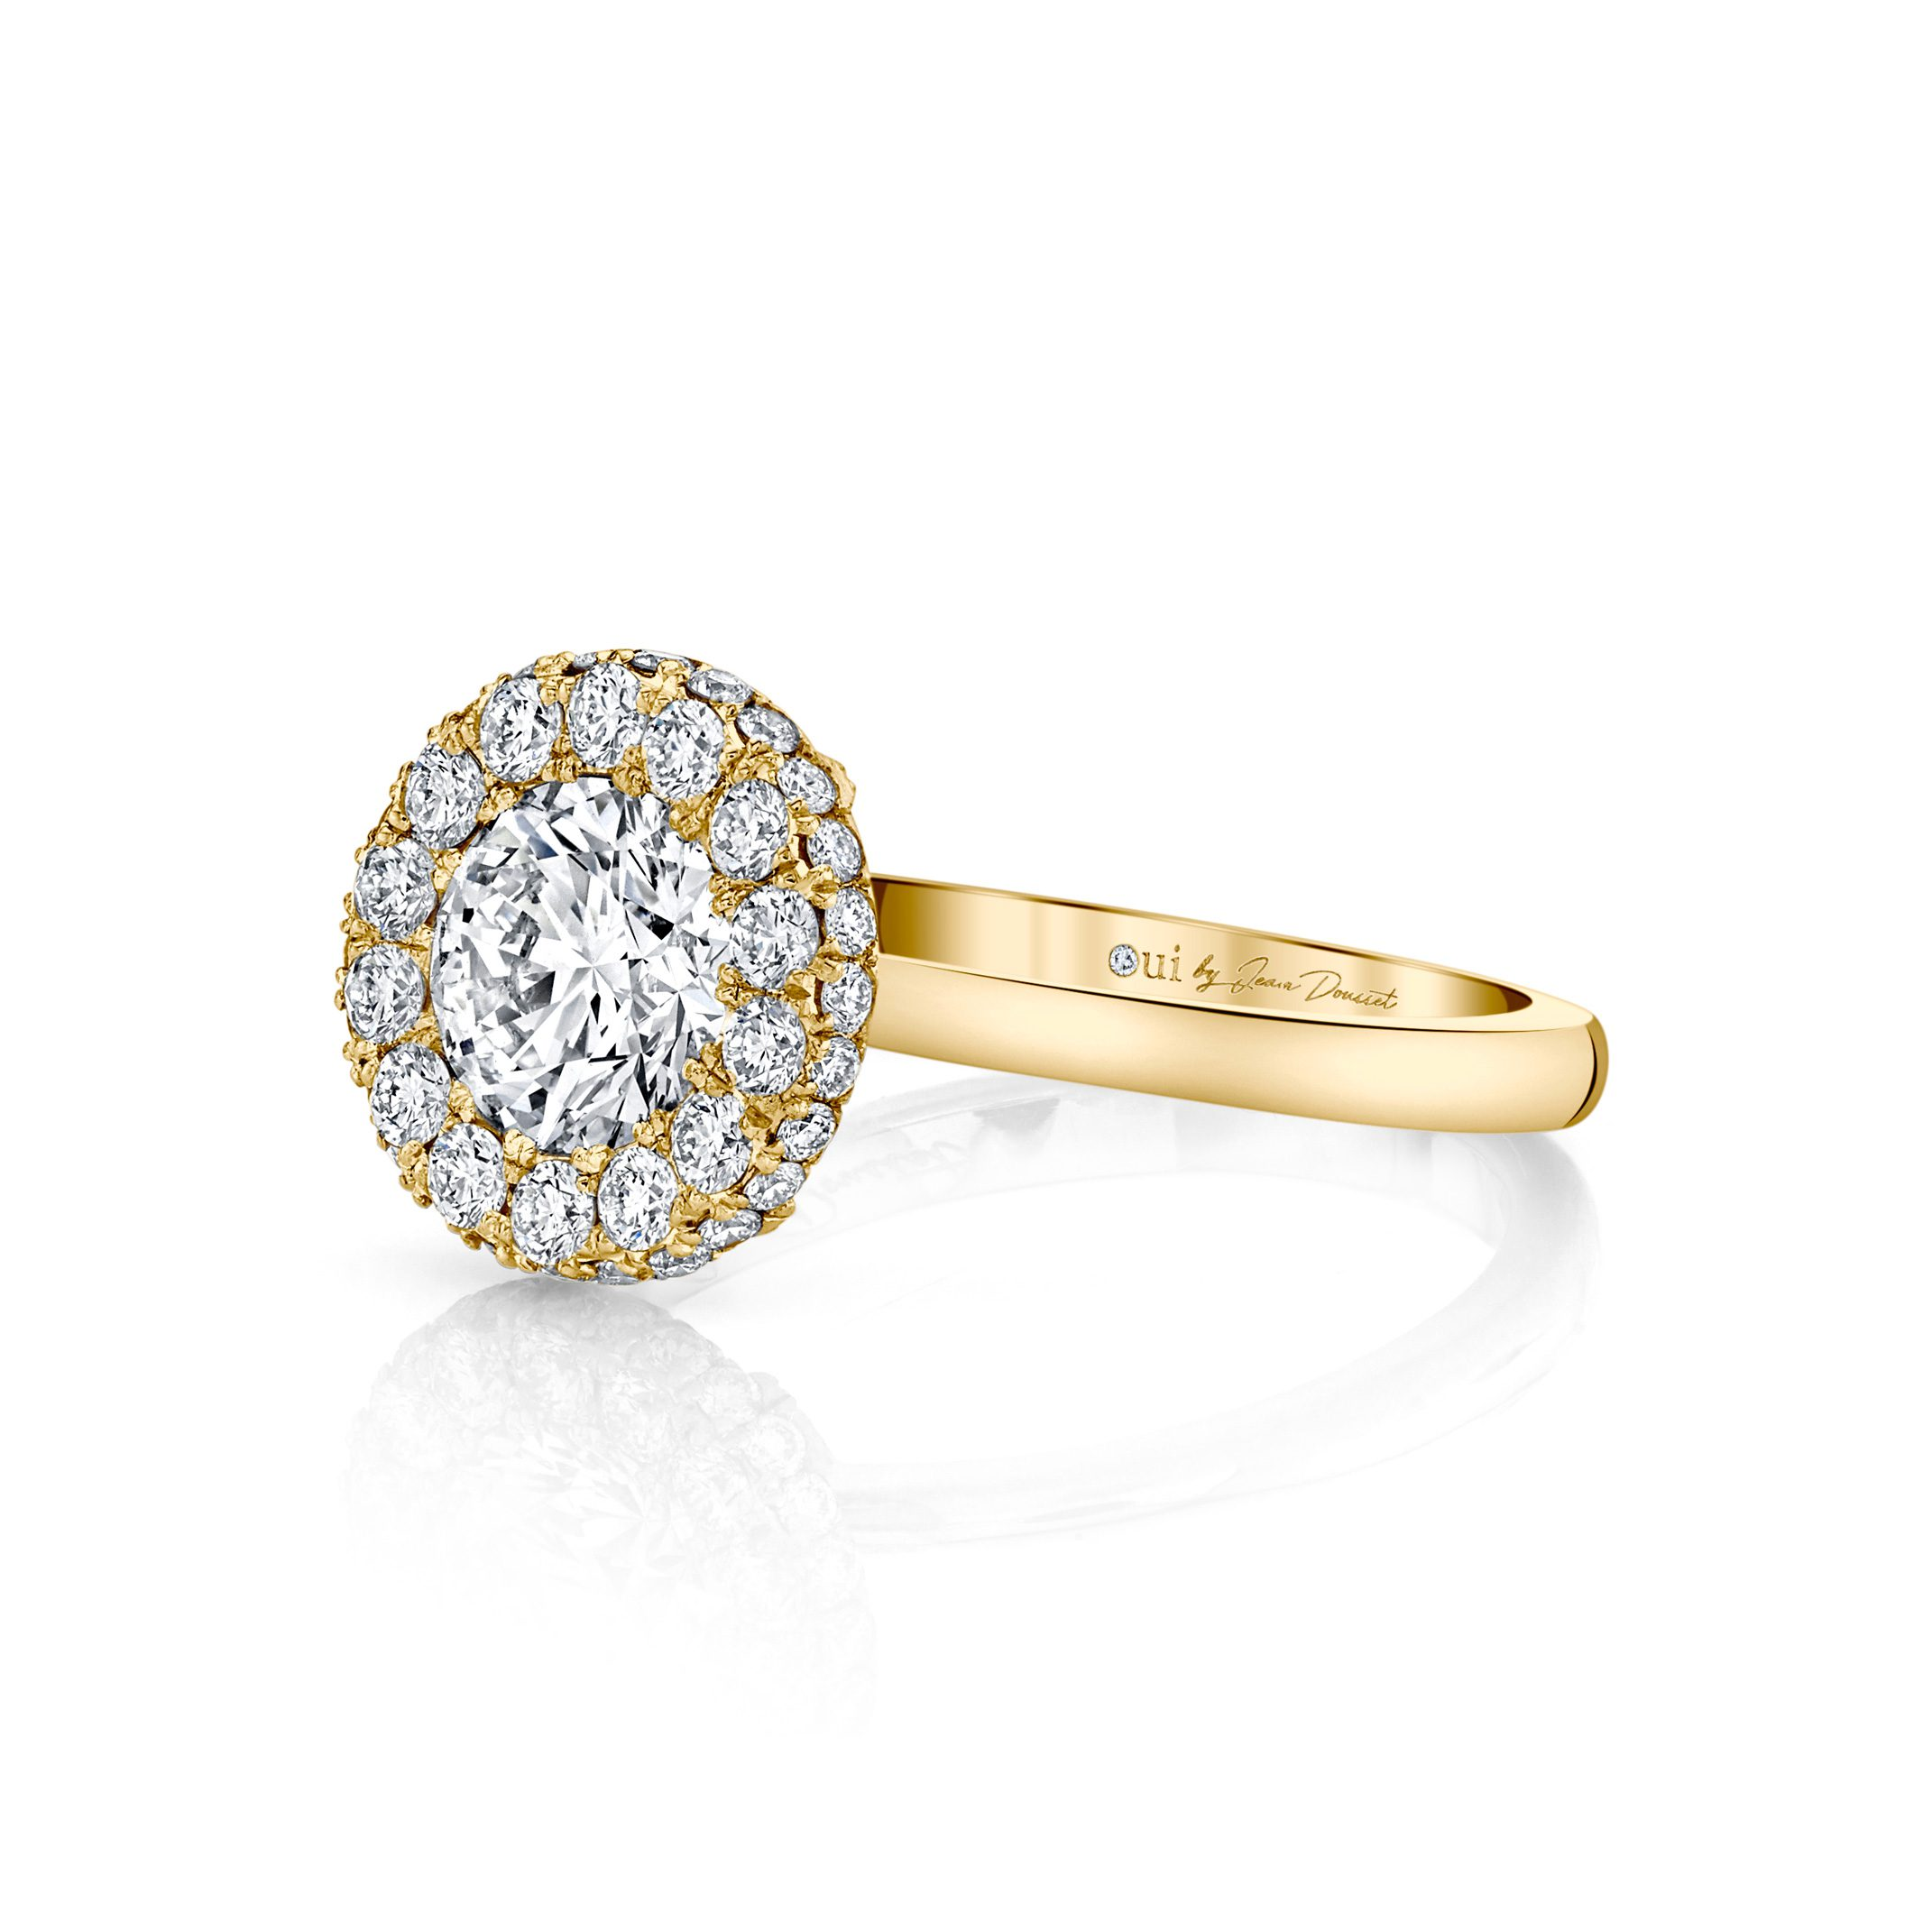 Colette Round Brilliant Seamless Halo® Engagement Ring with a solid band in 18k Yellow Gold Side View by Oui by Jean Dousset